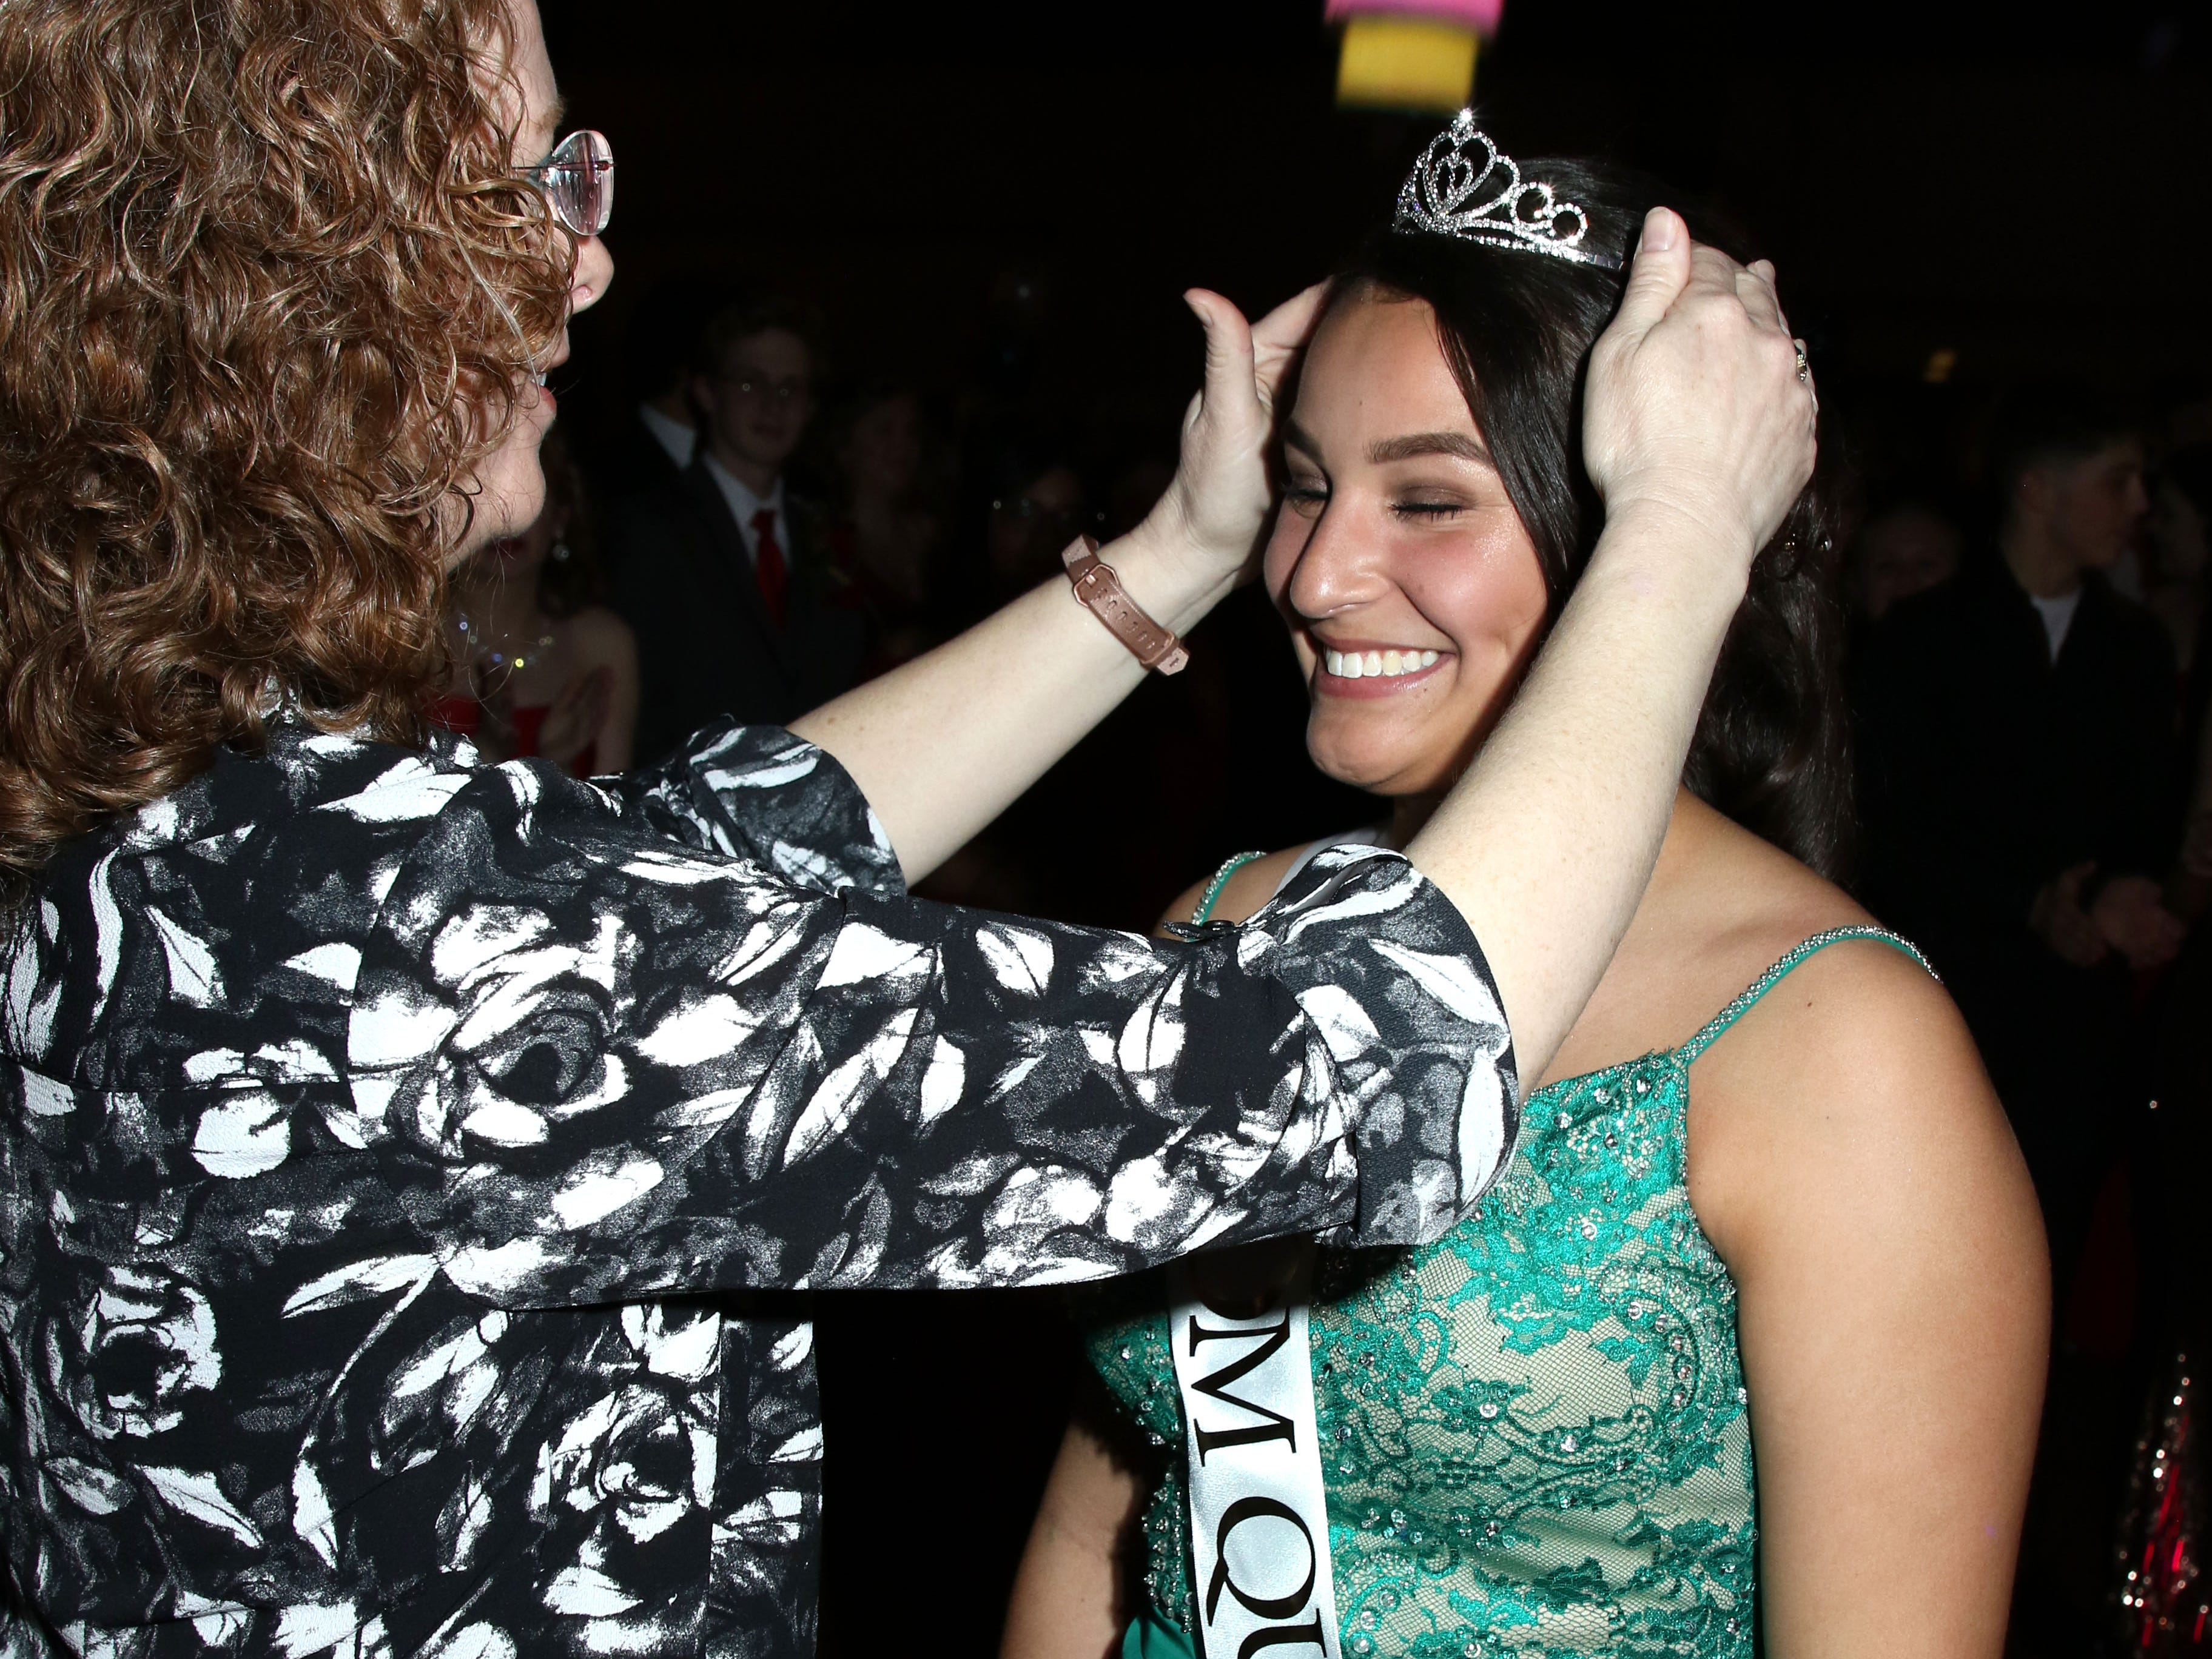 Marisol Fick was crowned Queen. Port Clinton's 2019 Prom was held Saturday, April 27th at Lyman Harbor in Sandusky.